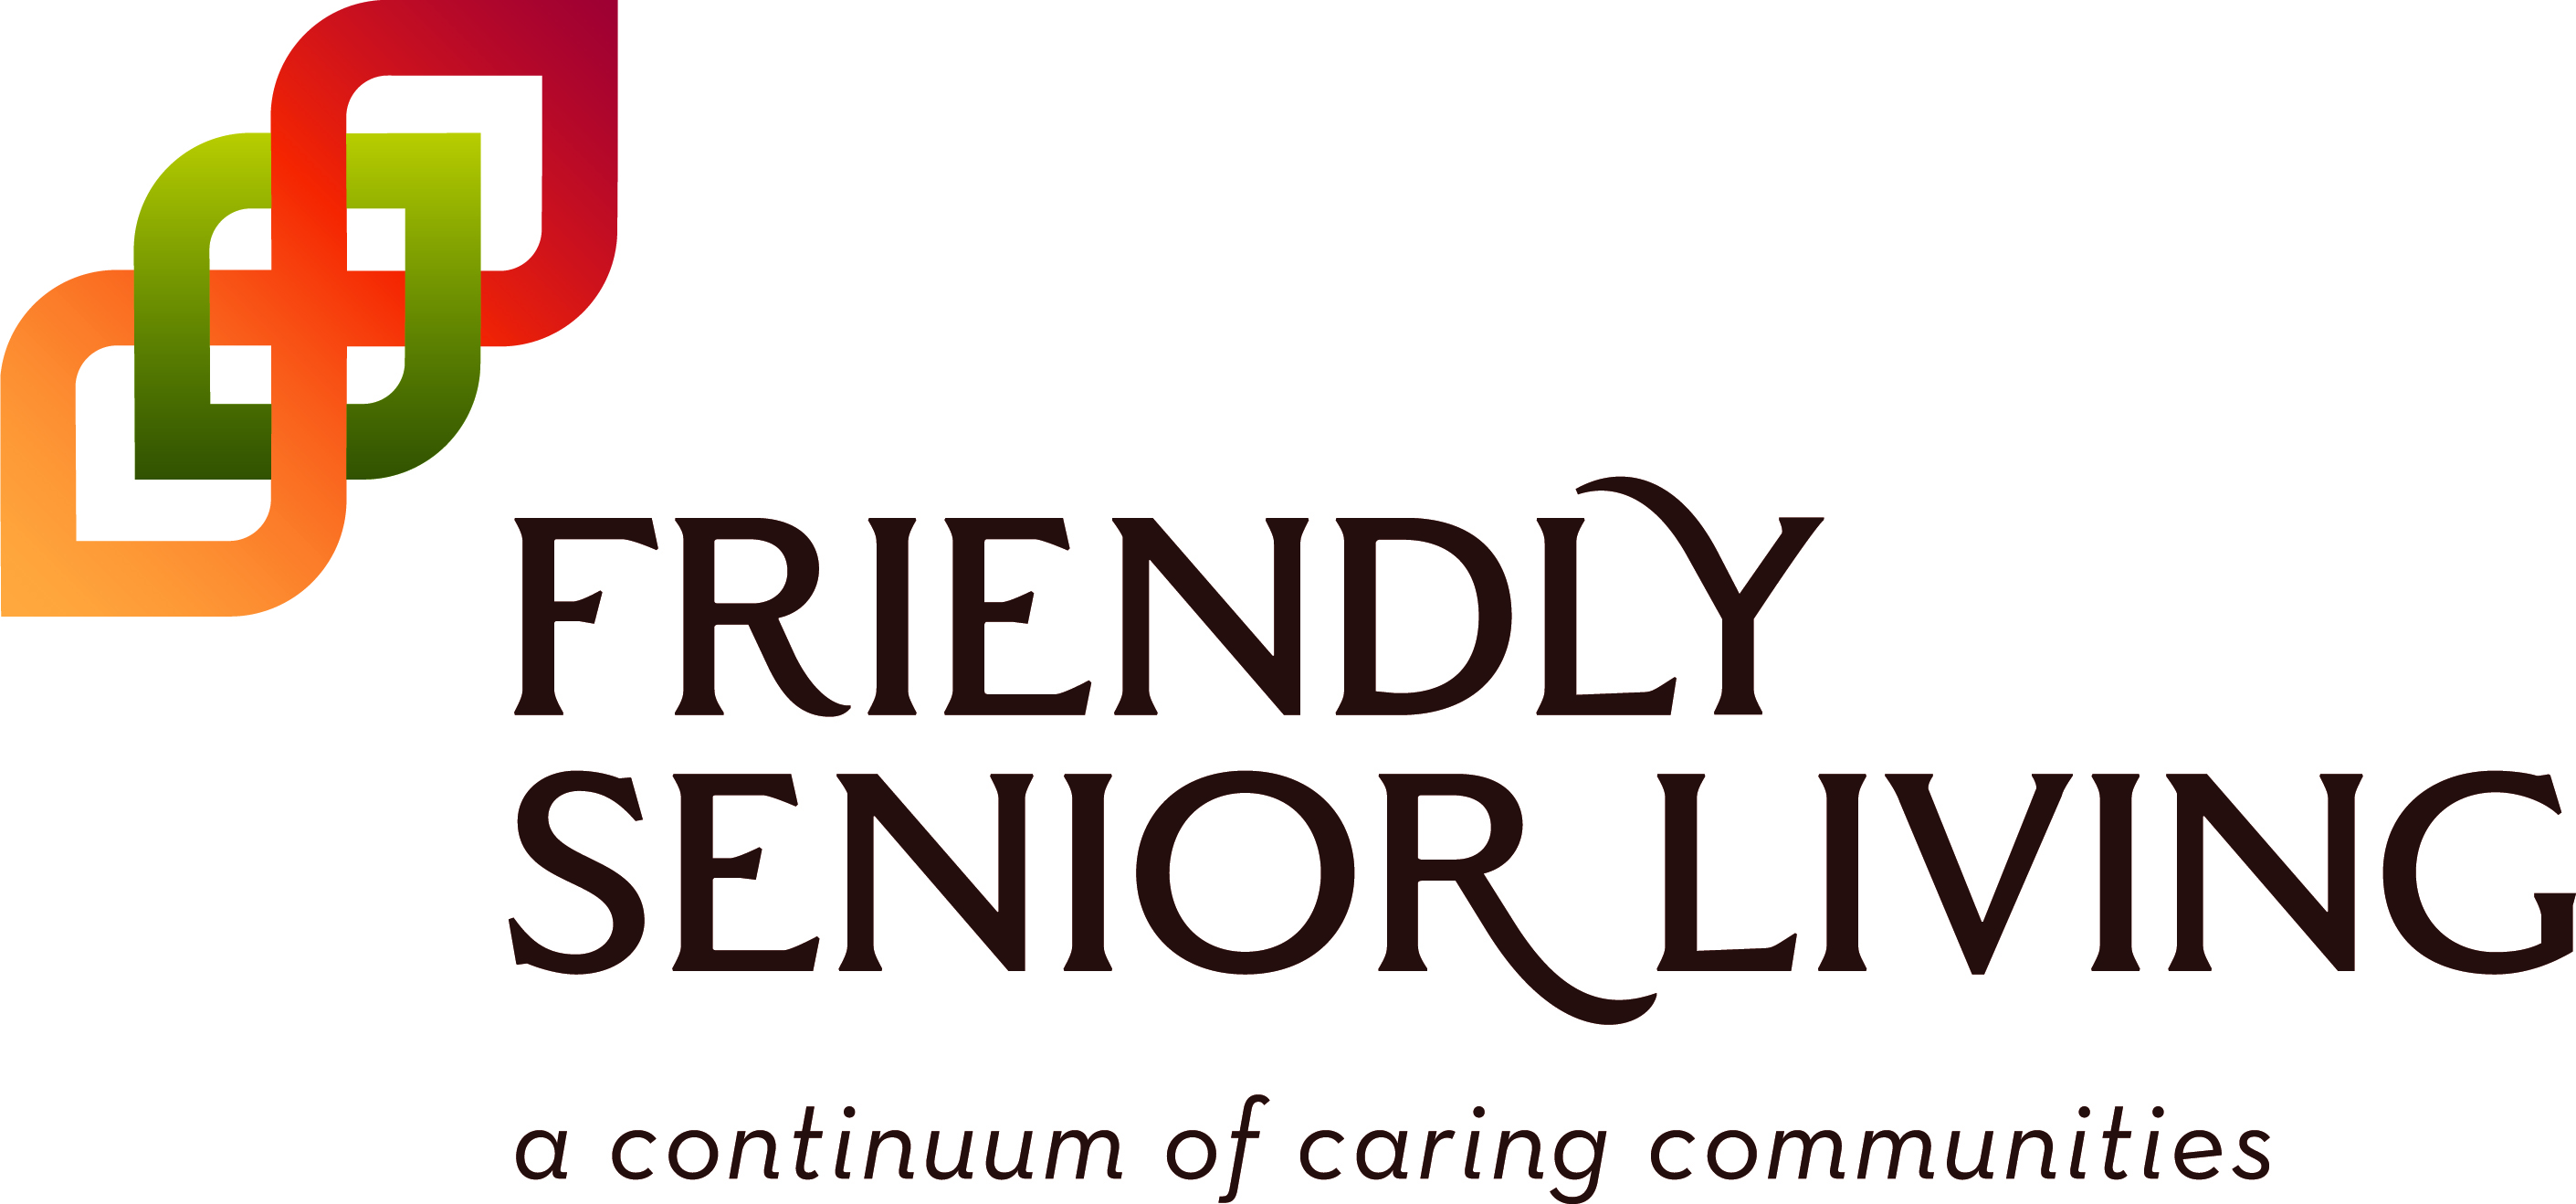 #5 Friendly Senior Living ( Supporting)